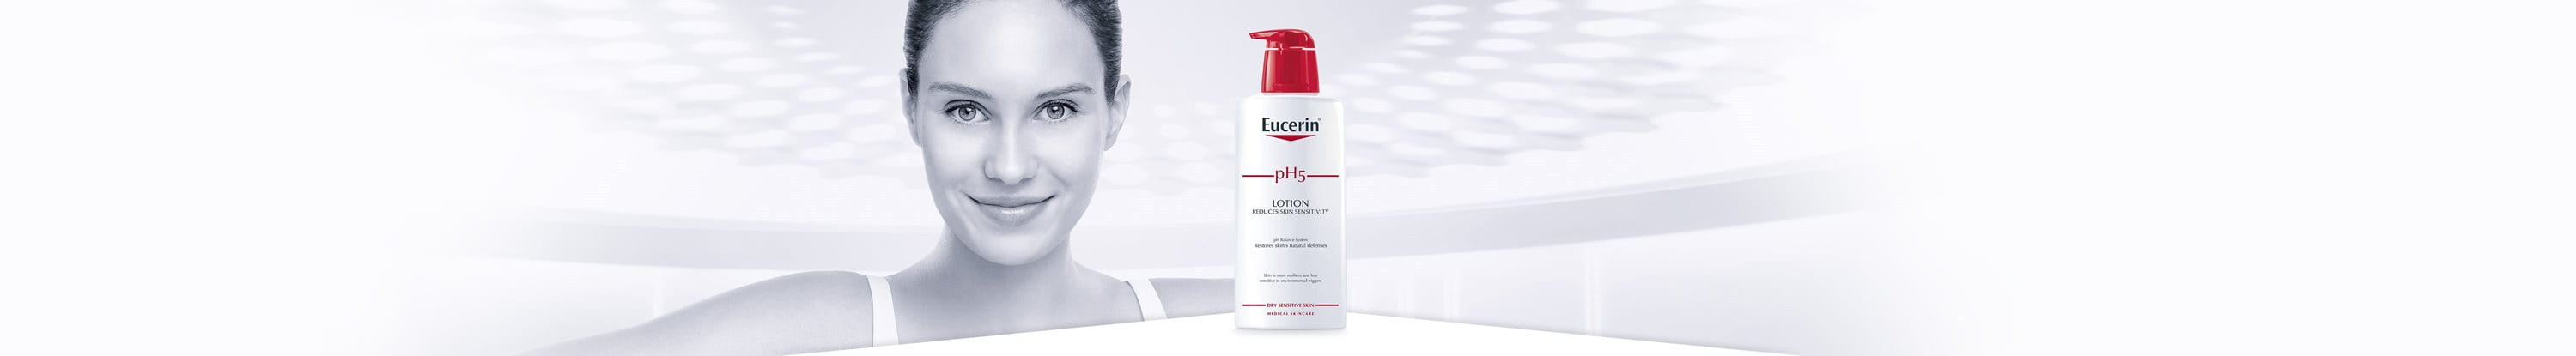 pH5 Lotion for dry sensitive skin